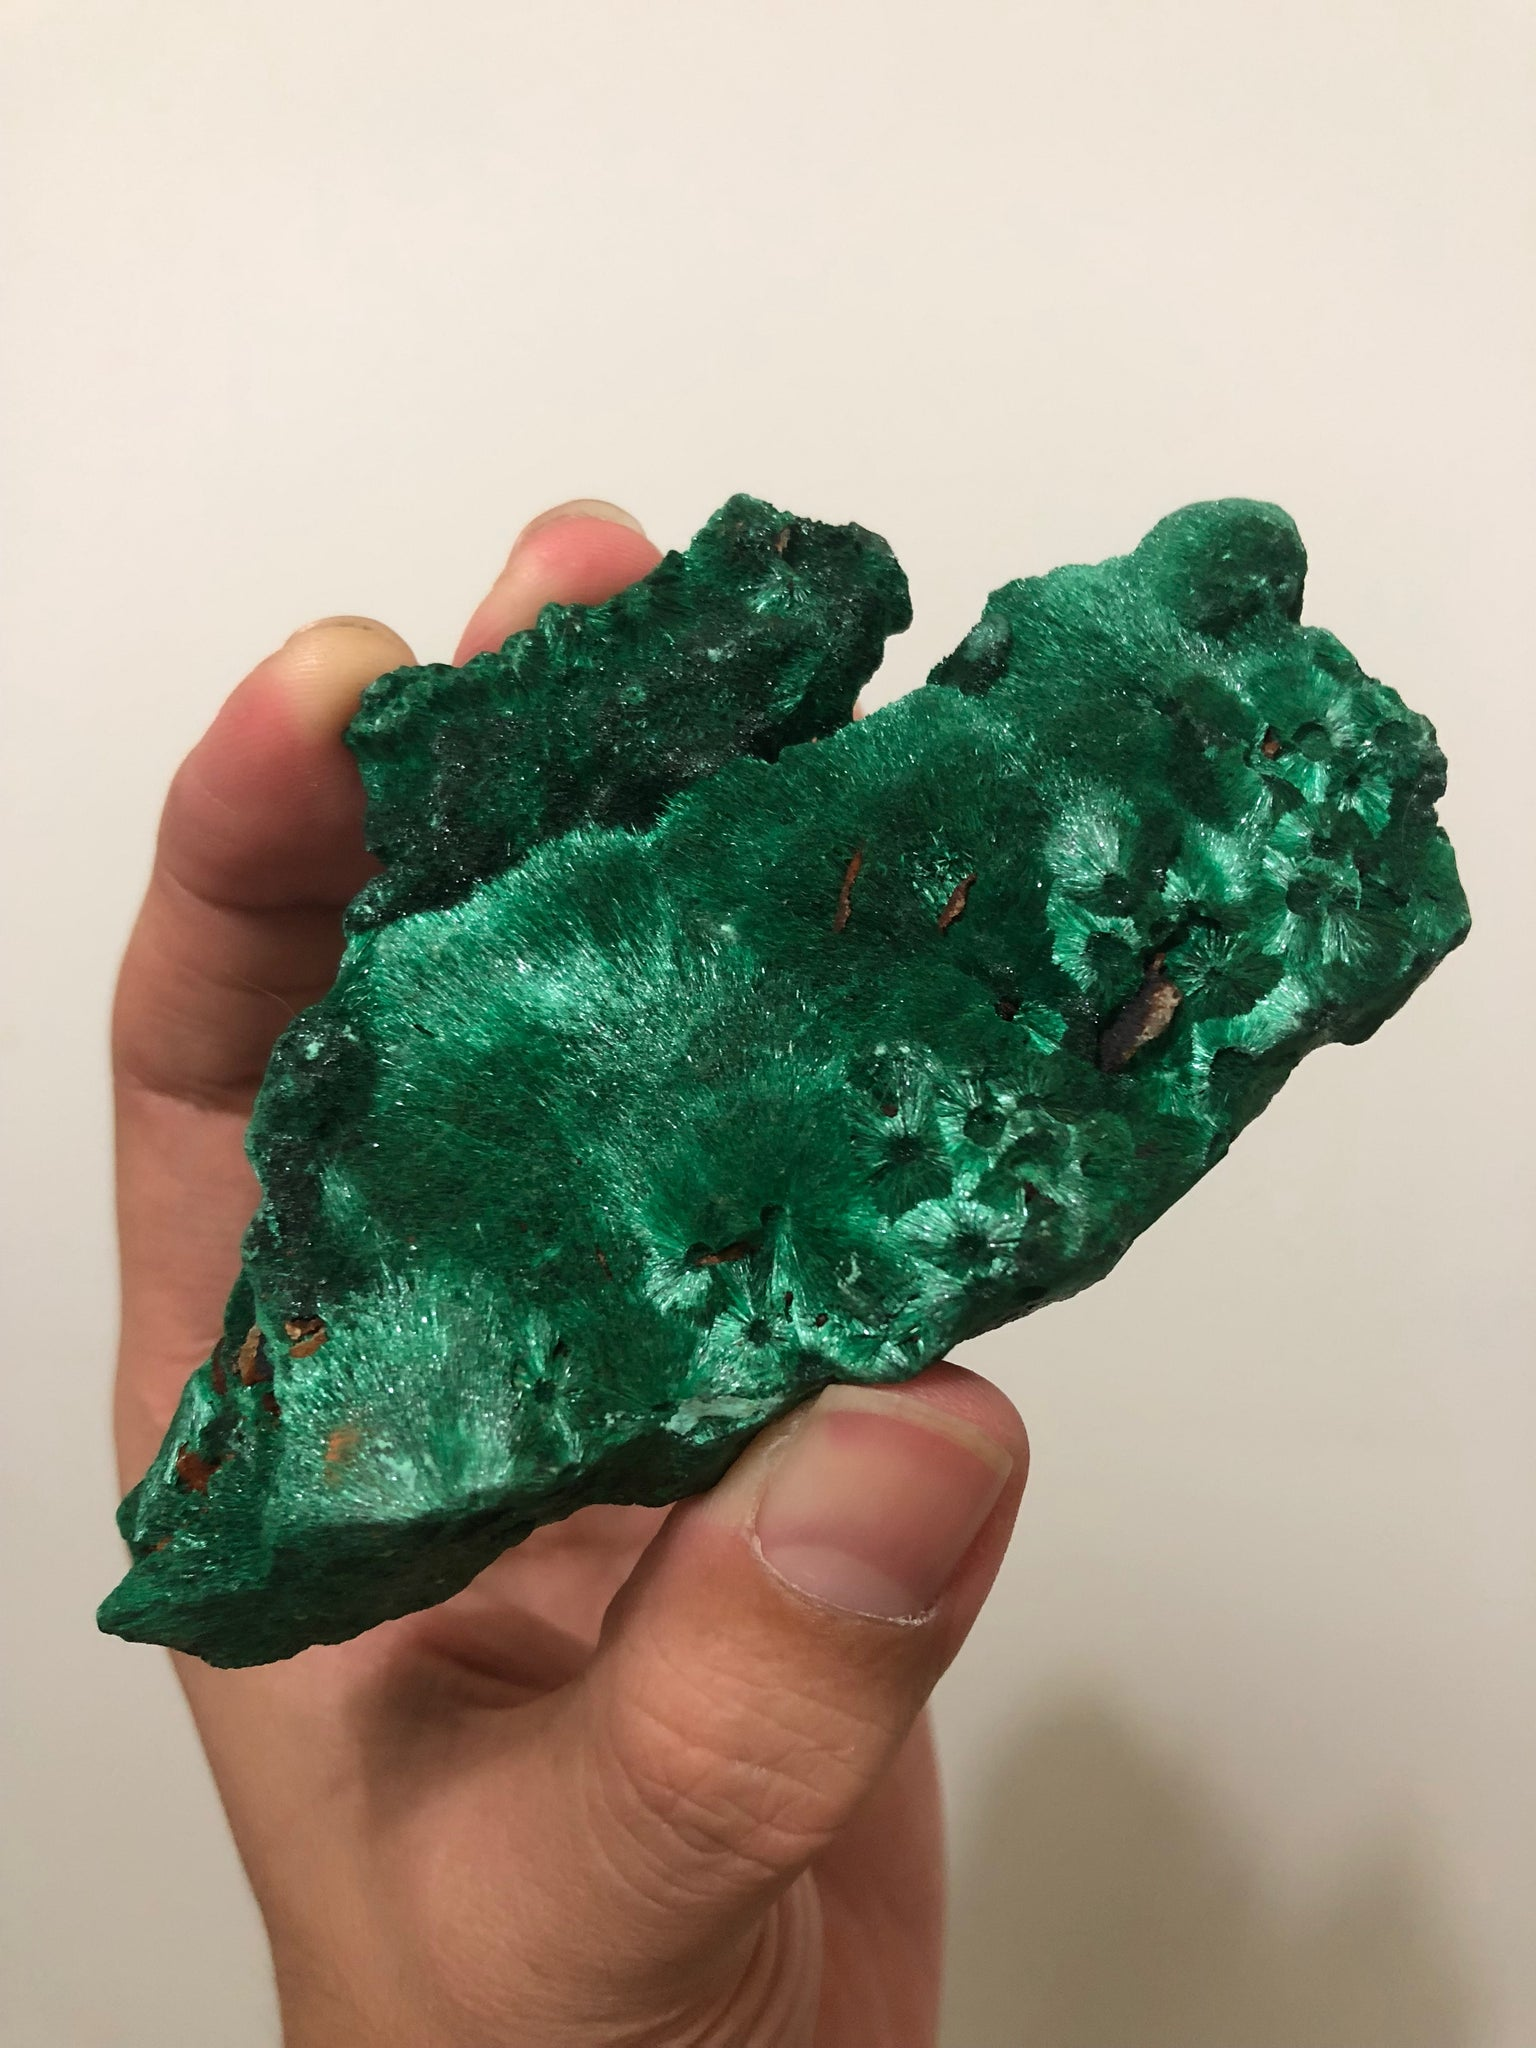 Malachite Crystal Raw Mineral 131g